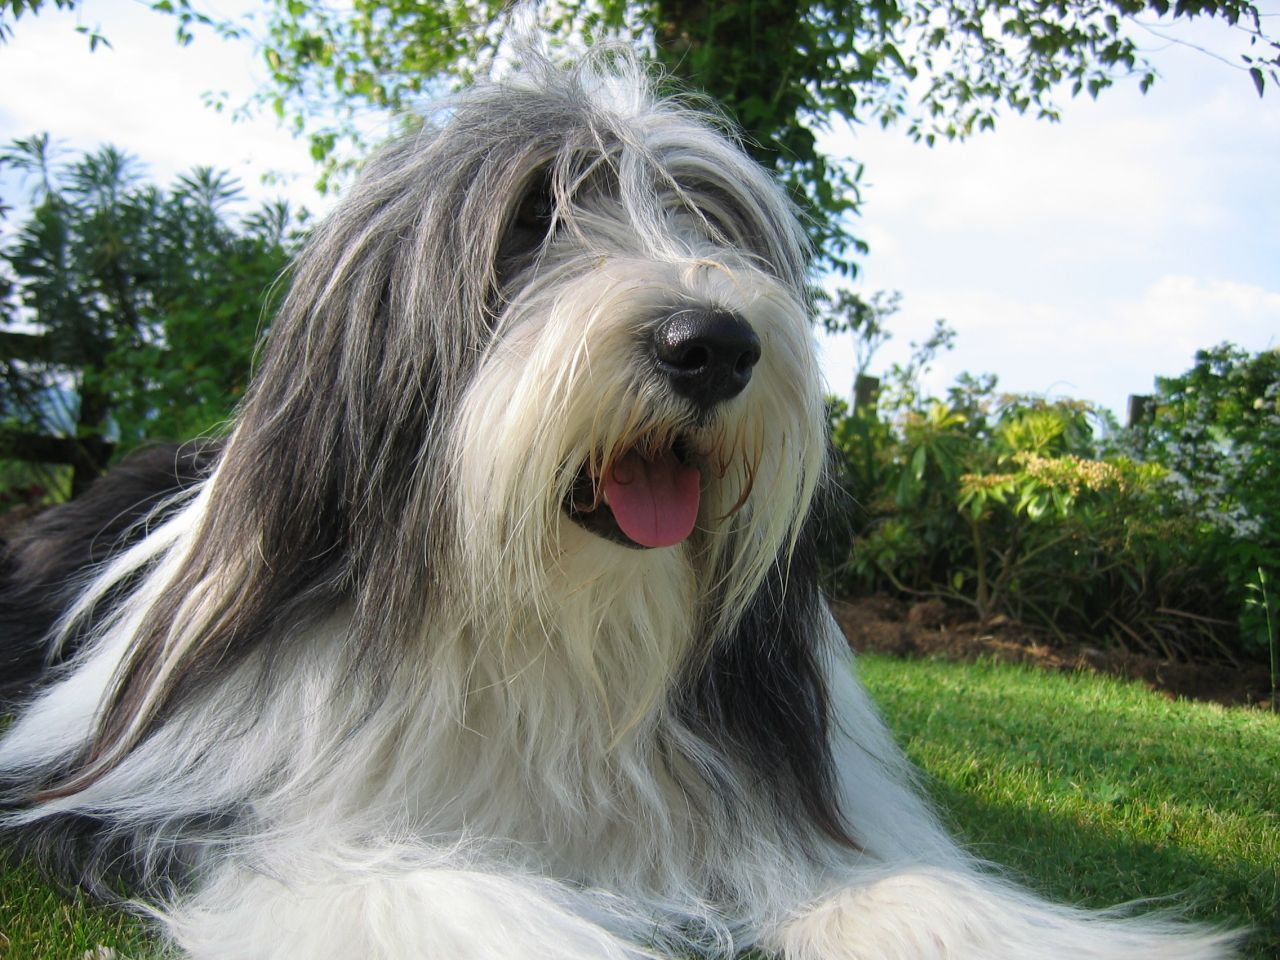 Pedigree Bearded Collie Puppies For Sale 51cd6f392c7a0 Jpg 1280